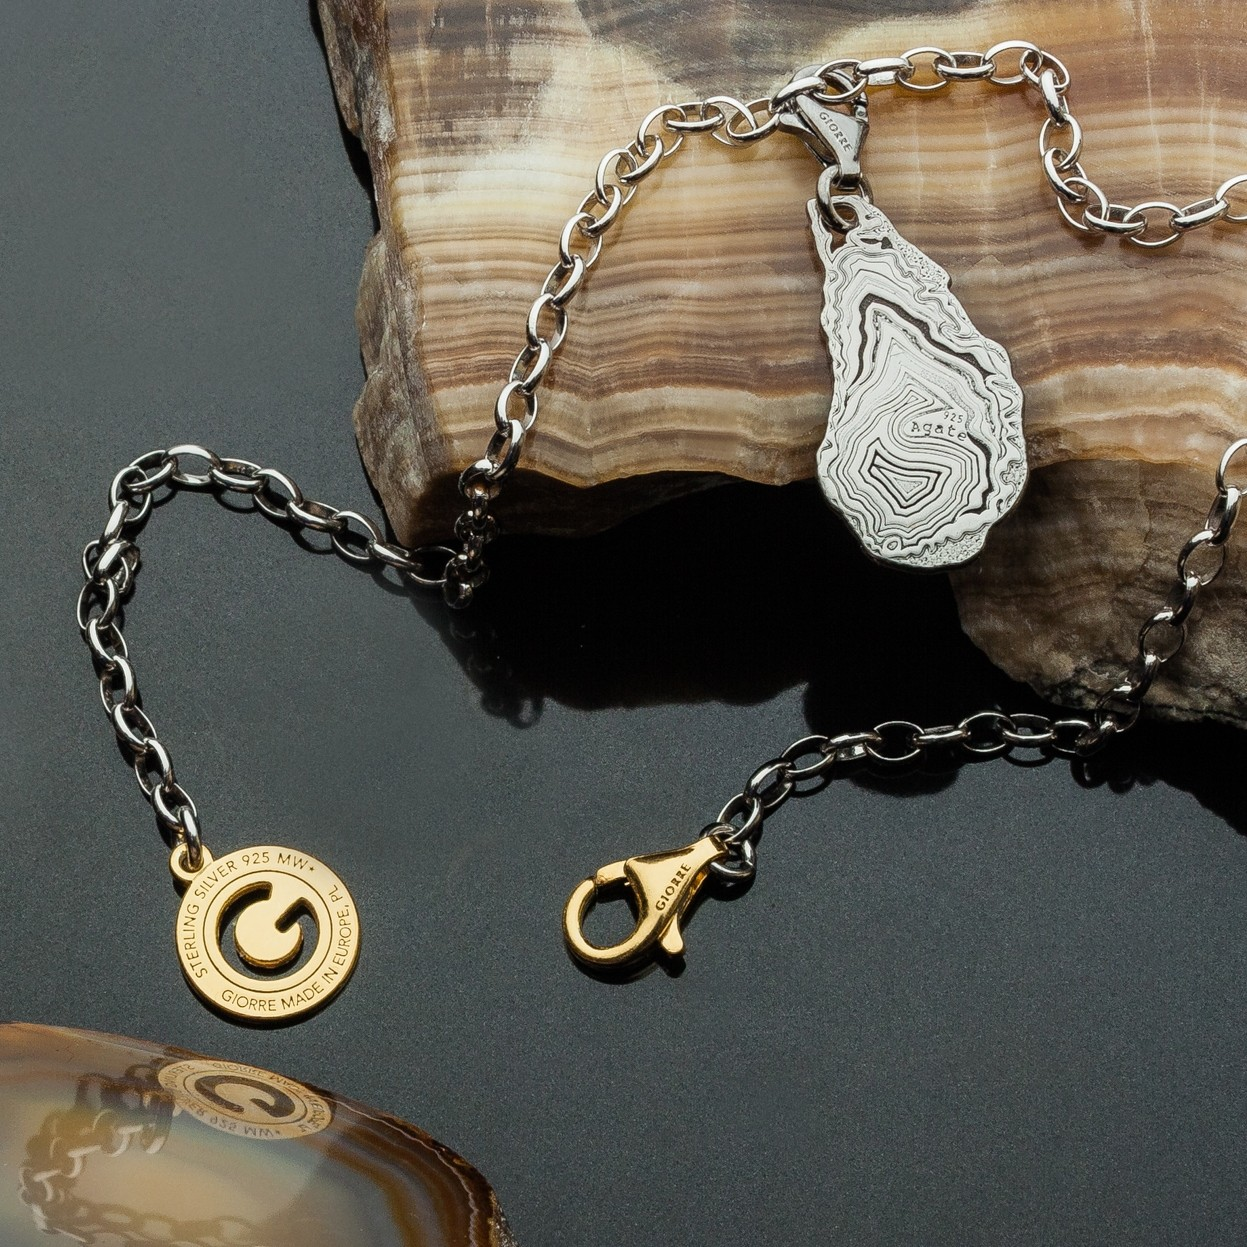 CHARM 6, AGATE, STERLING SILVER RHODIUM OR 24K GOLD PLATED